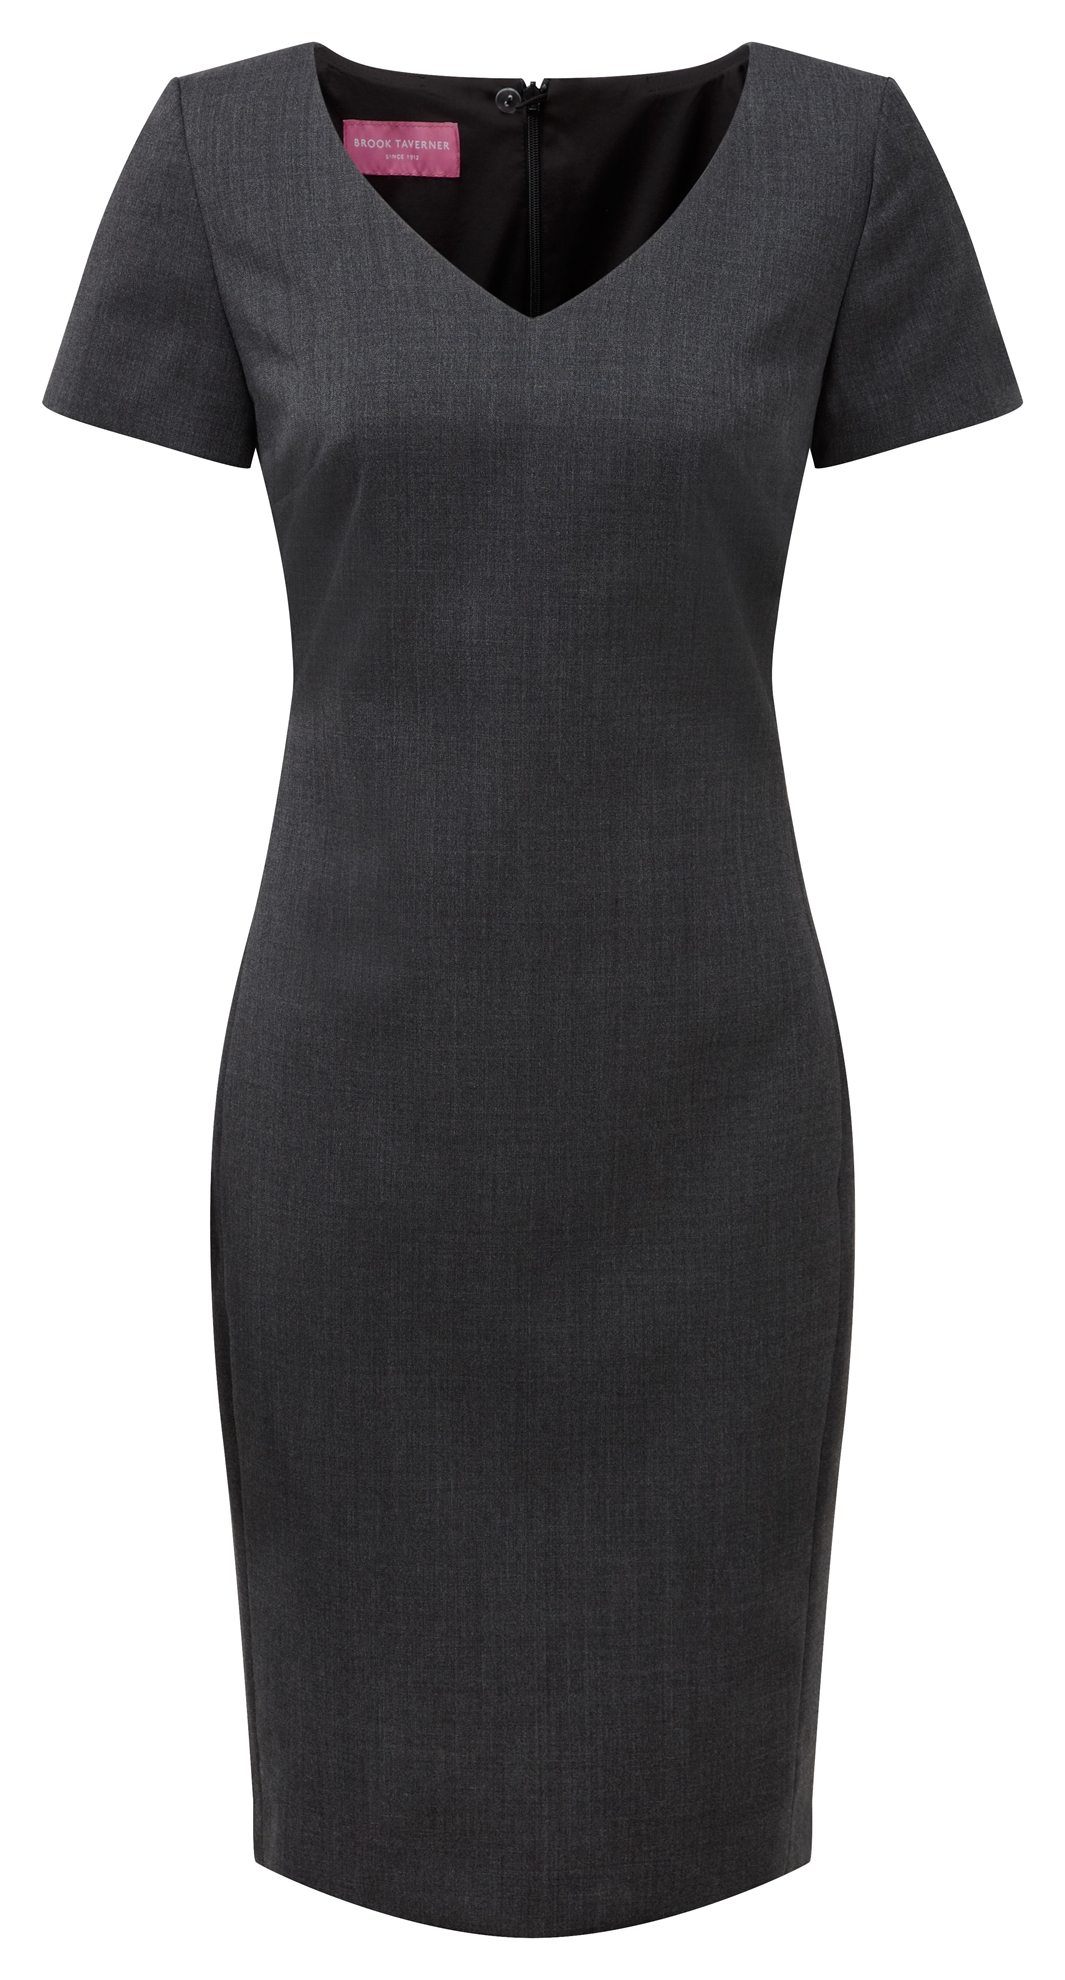 Picture of V Neck Corinthia Shift Dress - Mid Grey